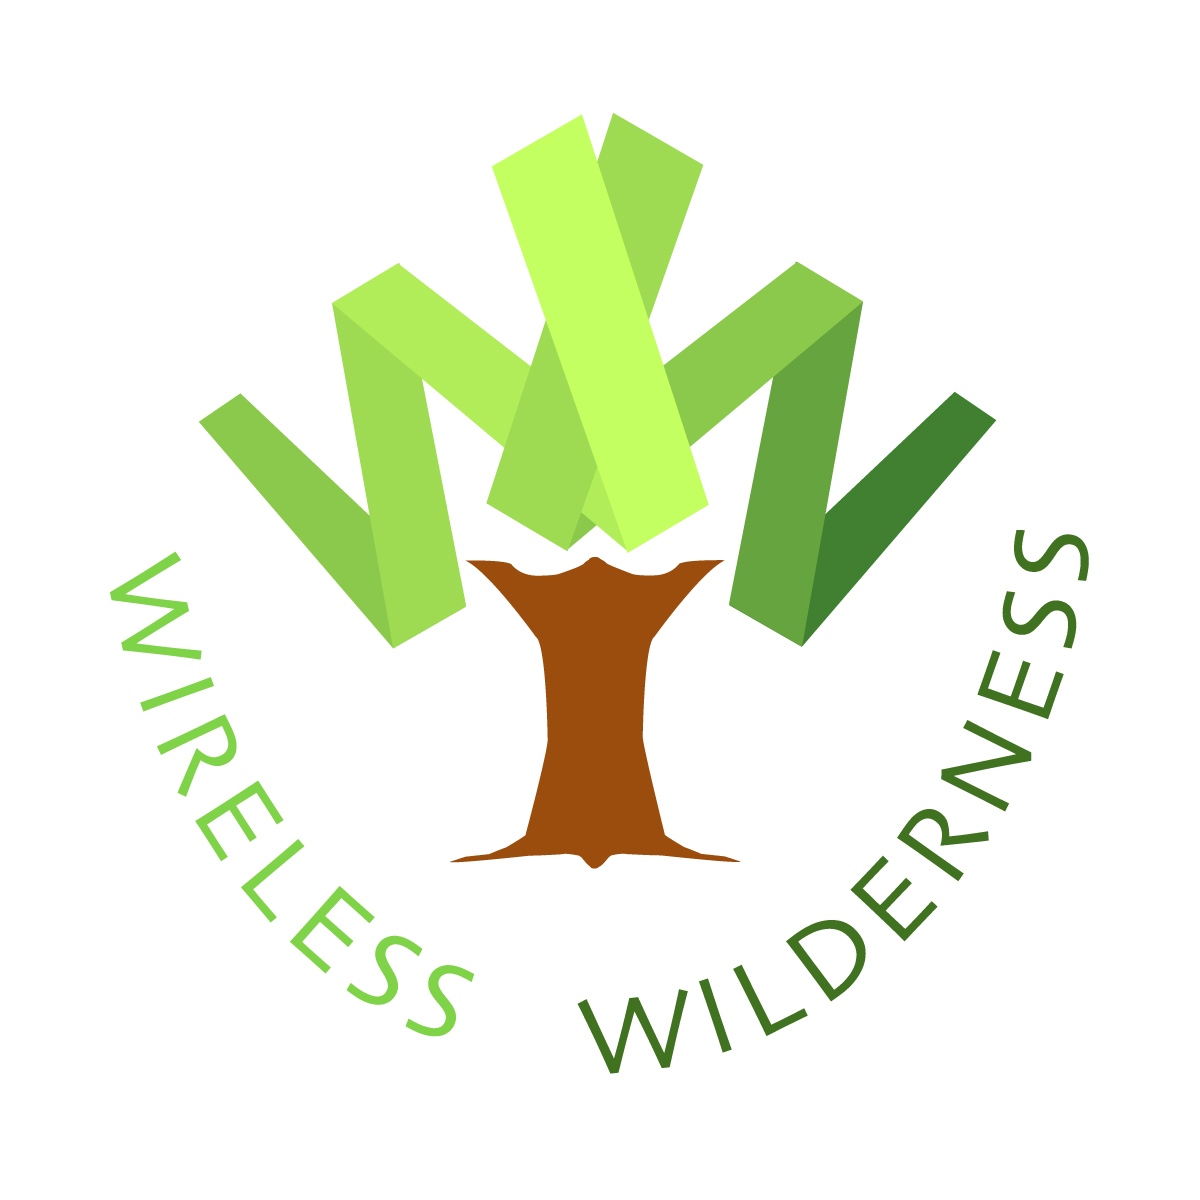 WIreless WildernessAudio Tour - a unique audio tour of the natural wonders tucked along the trails of West 11th Street Park available via cell phone or online